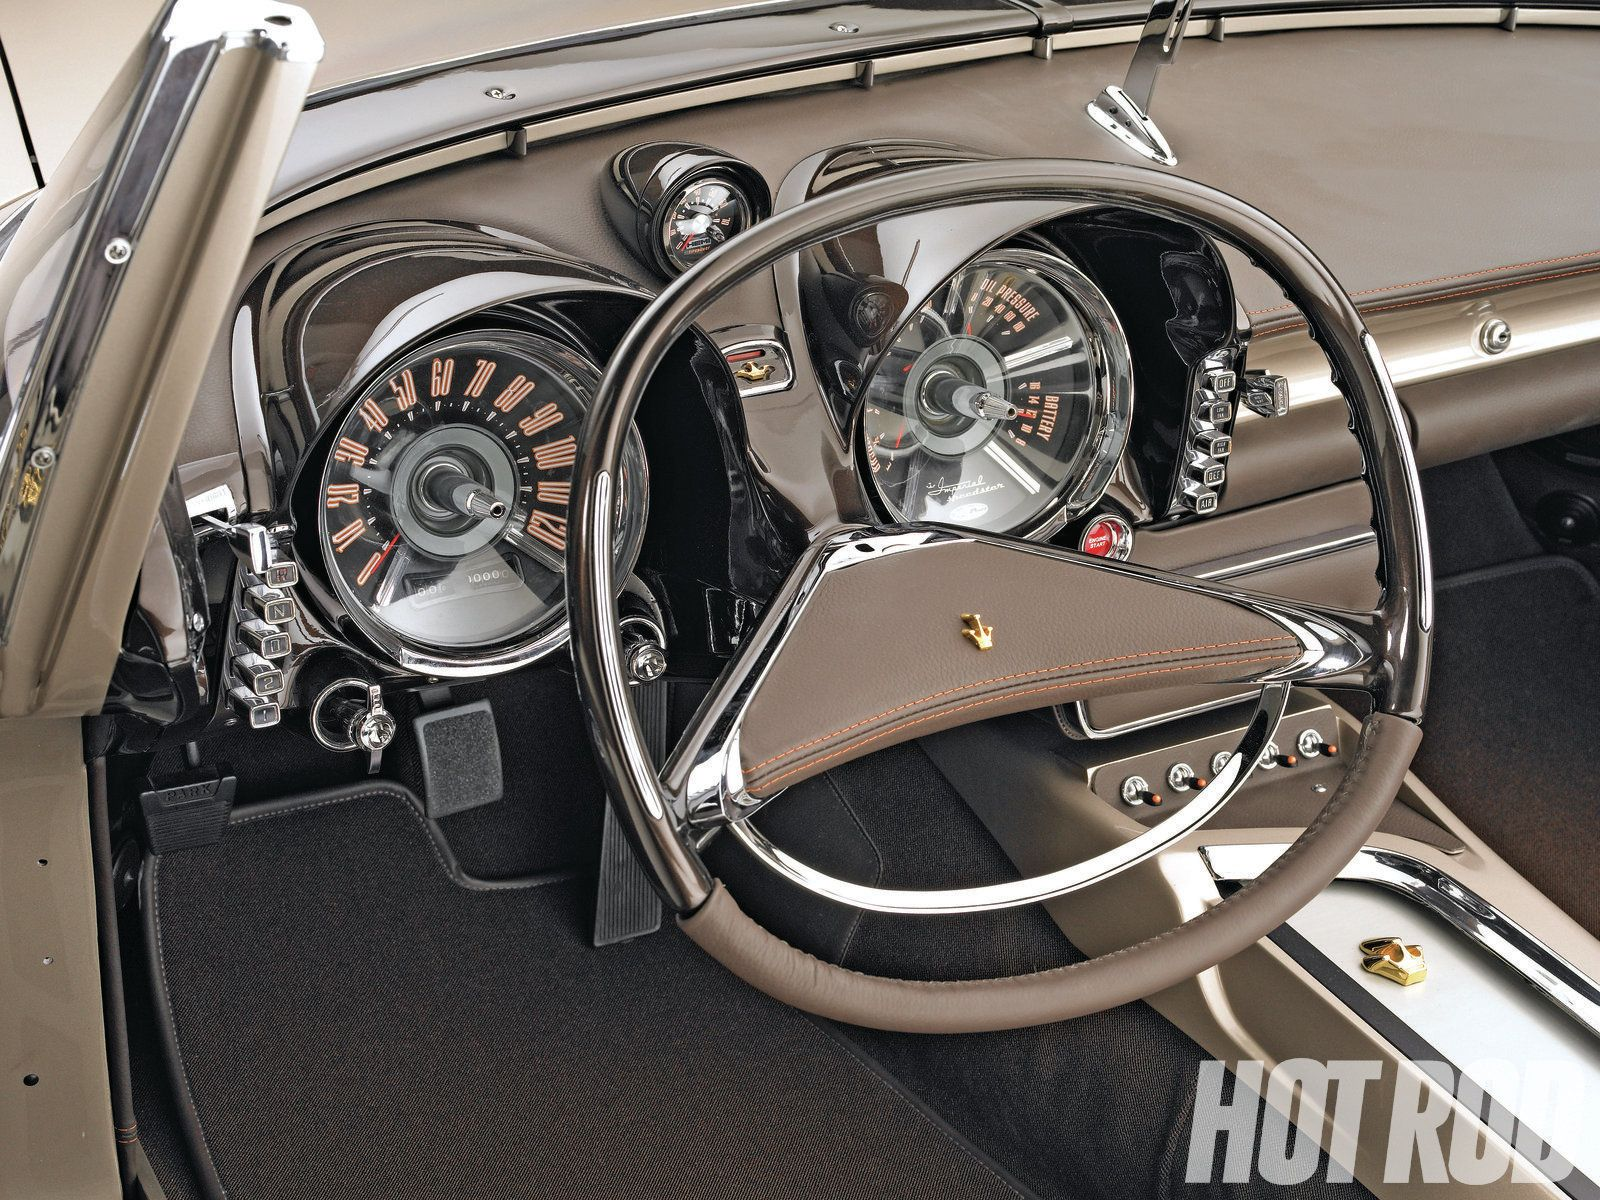 1956 chrysler imperial interior images - Chrysler Imperial Dashboard Note The Squared Oval Steering Wheel And Pushbutton Transmission Speedo Ain T Bad Either Pinterest Wheels And Cars